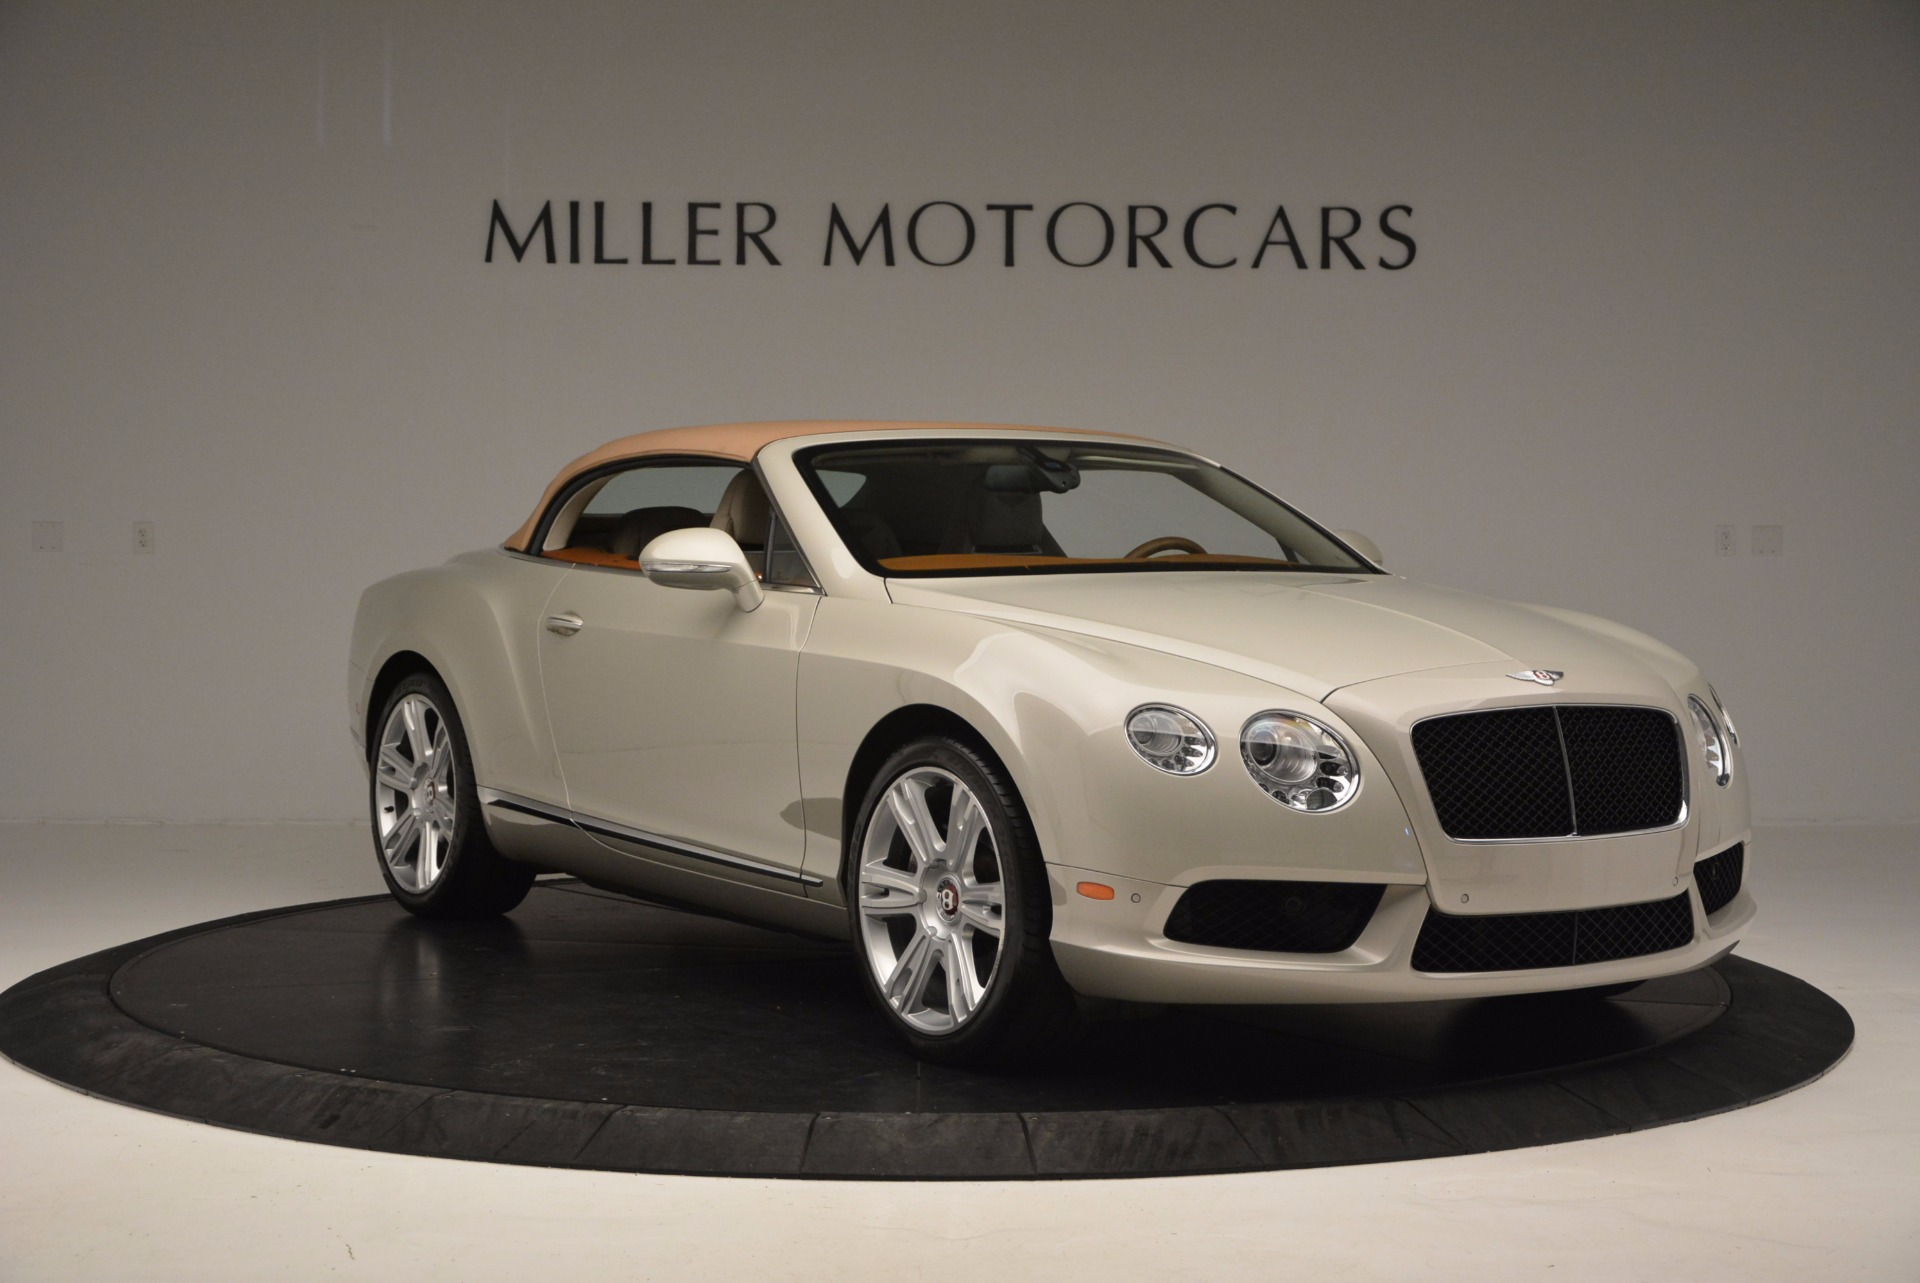 Used 2013 Bentley Continental GTC V8  For Sale In Greenwich, CT. Alfa Romeo of Greenwich, 7108 675_p24